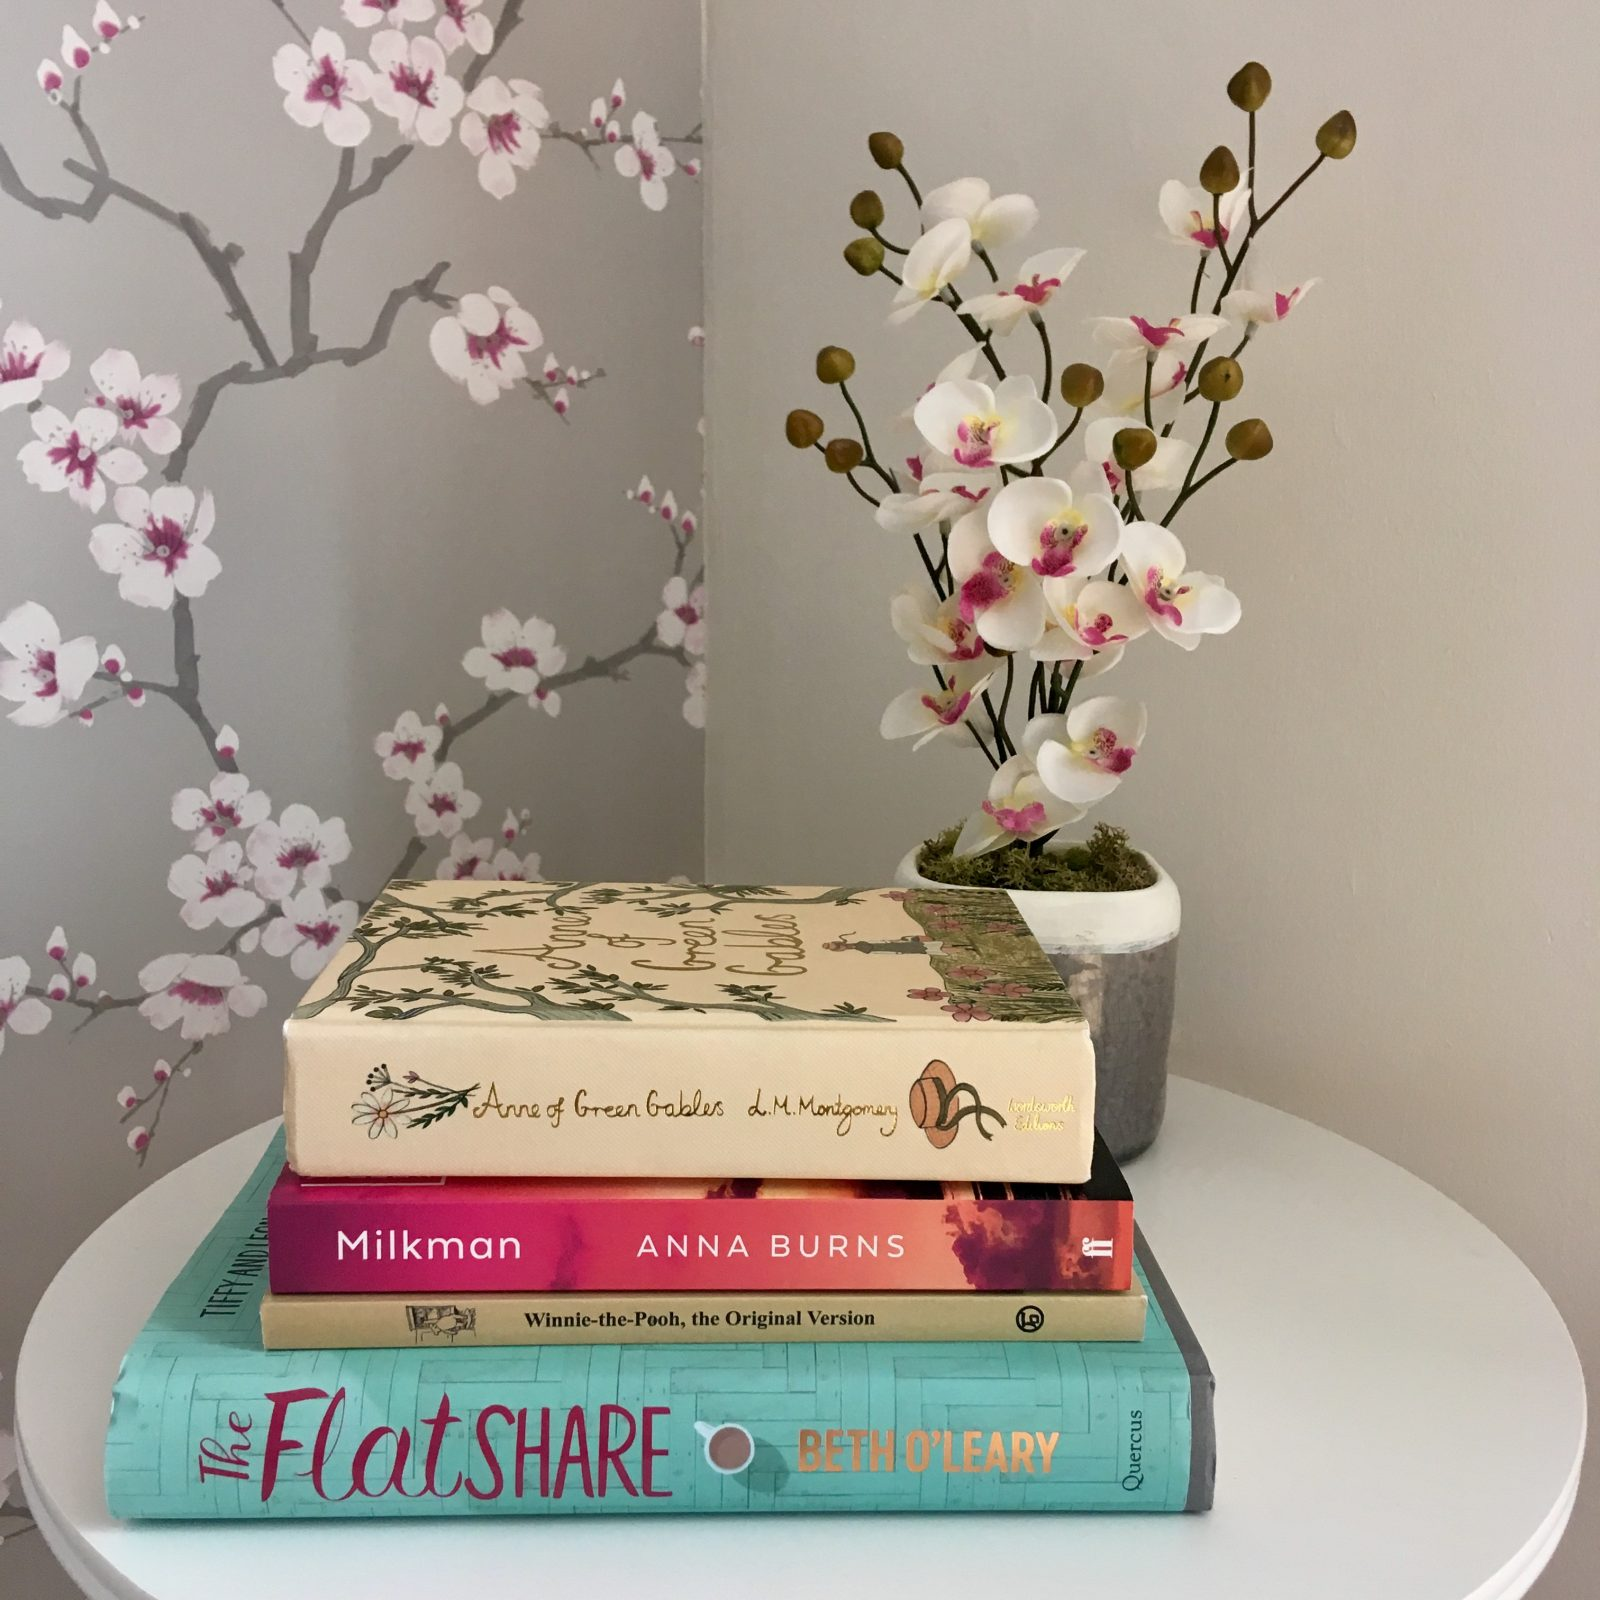 pile of books with spines visible, placed on white table with decorative flower in the background